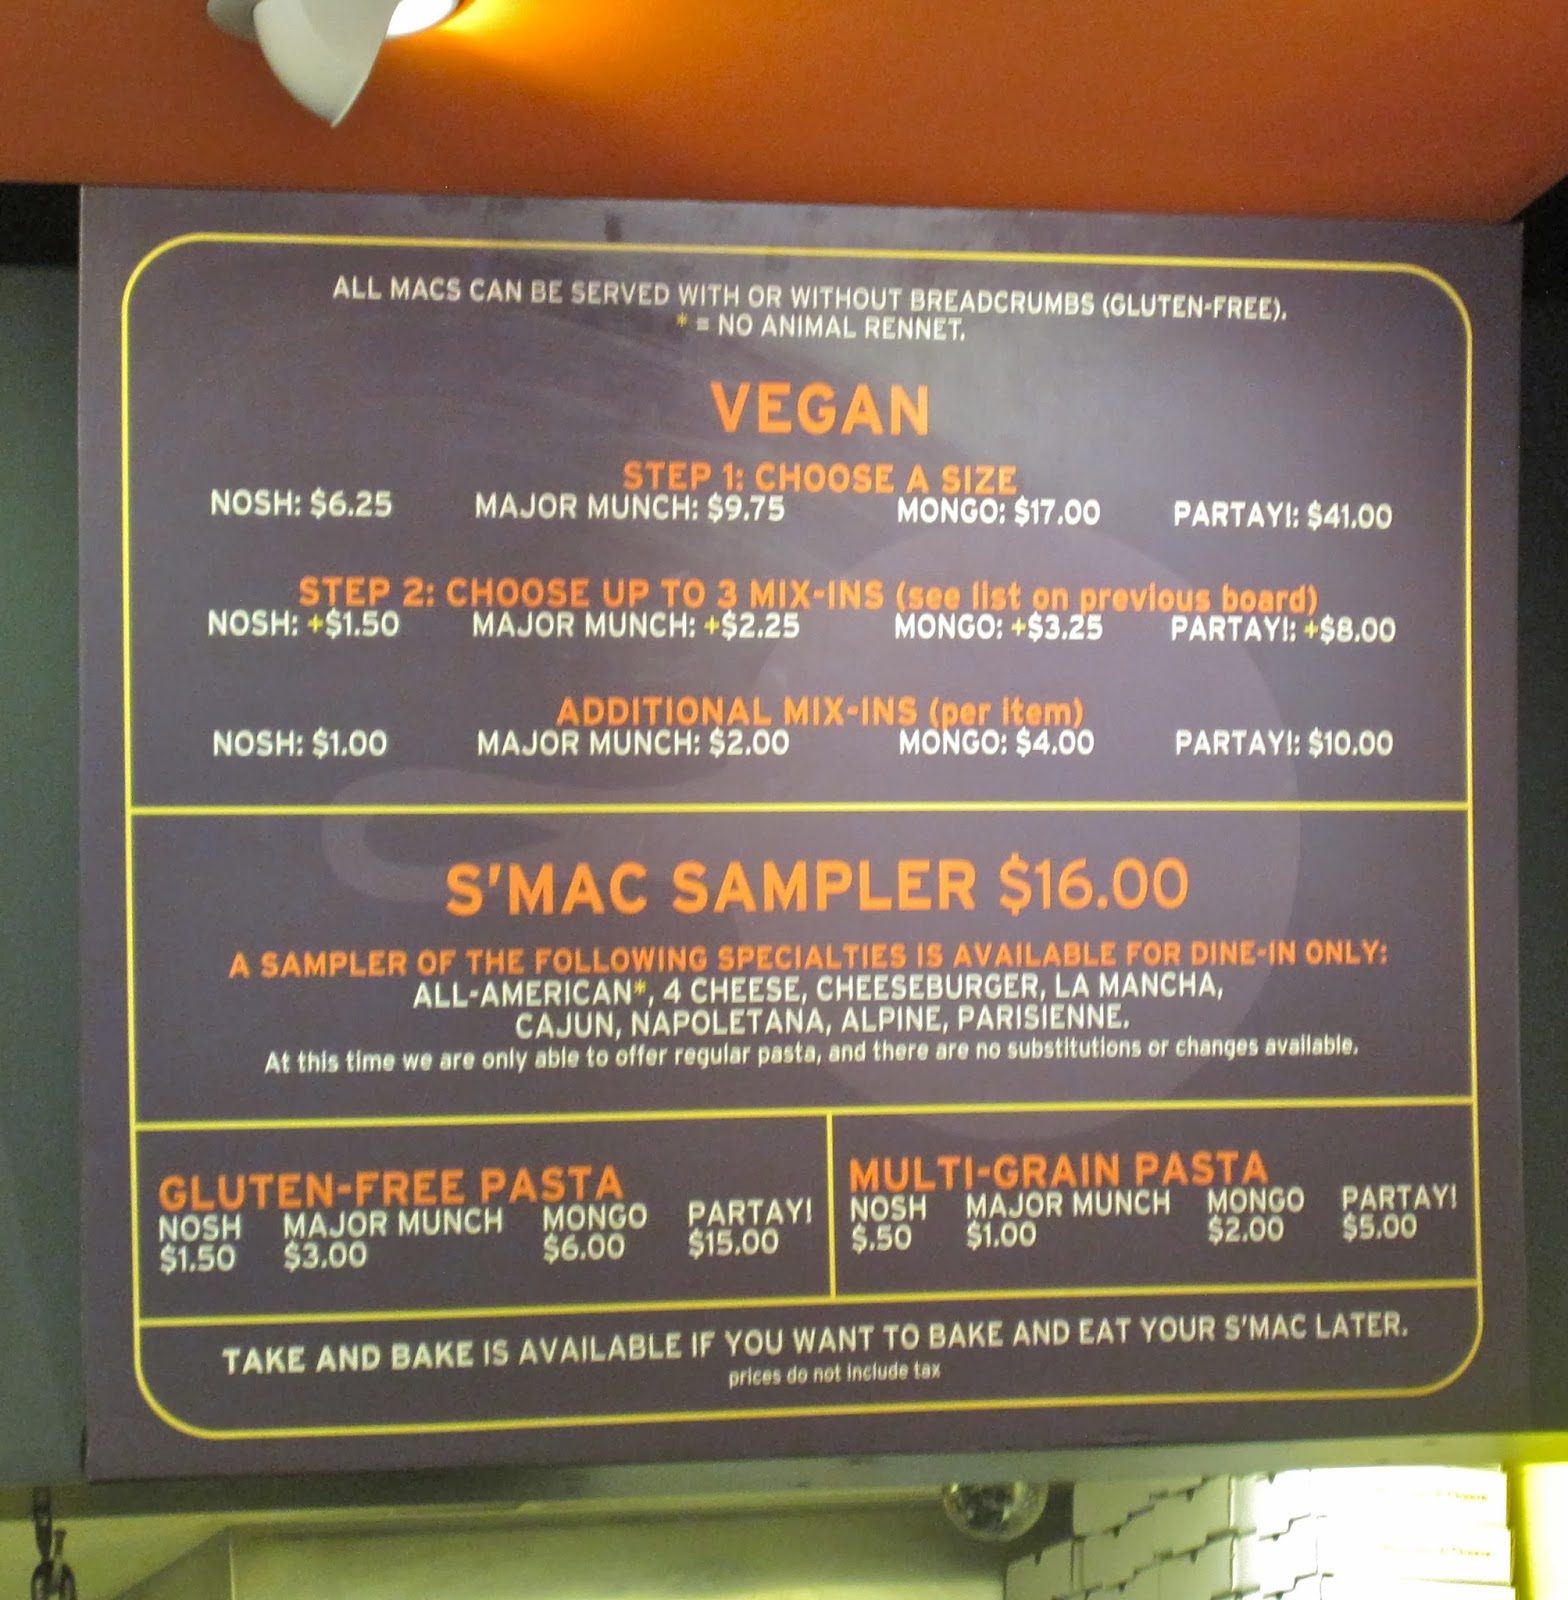 Vegan & Gluten-Free Menu Items at Sarita's Mac & Cheese